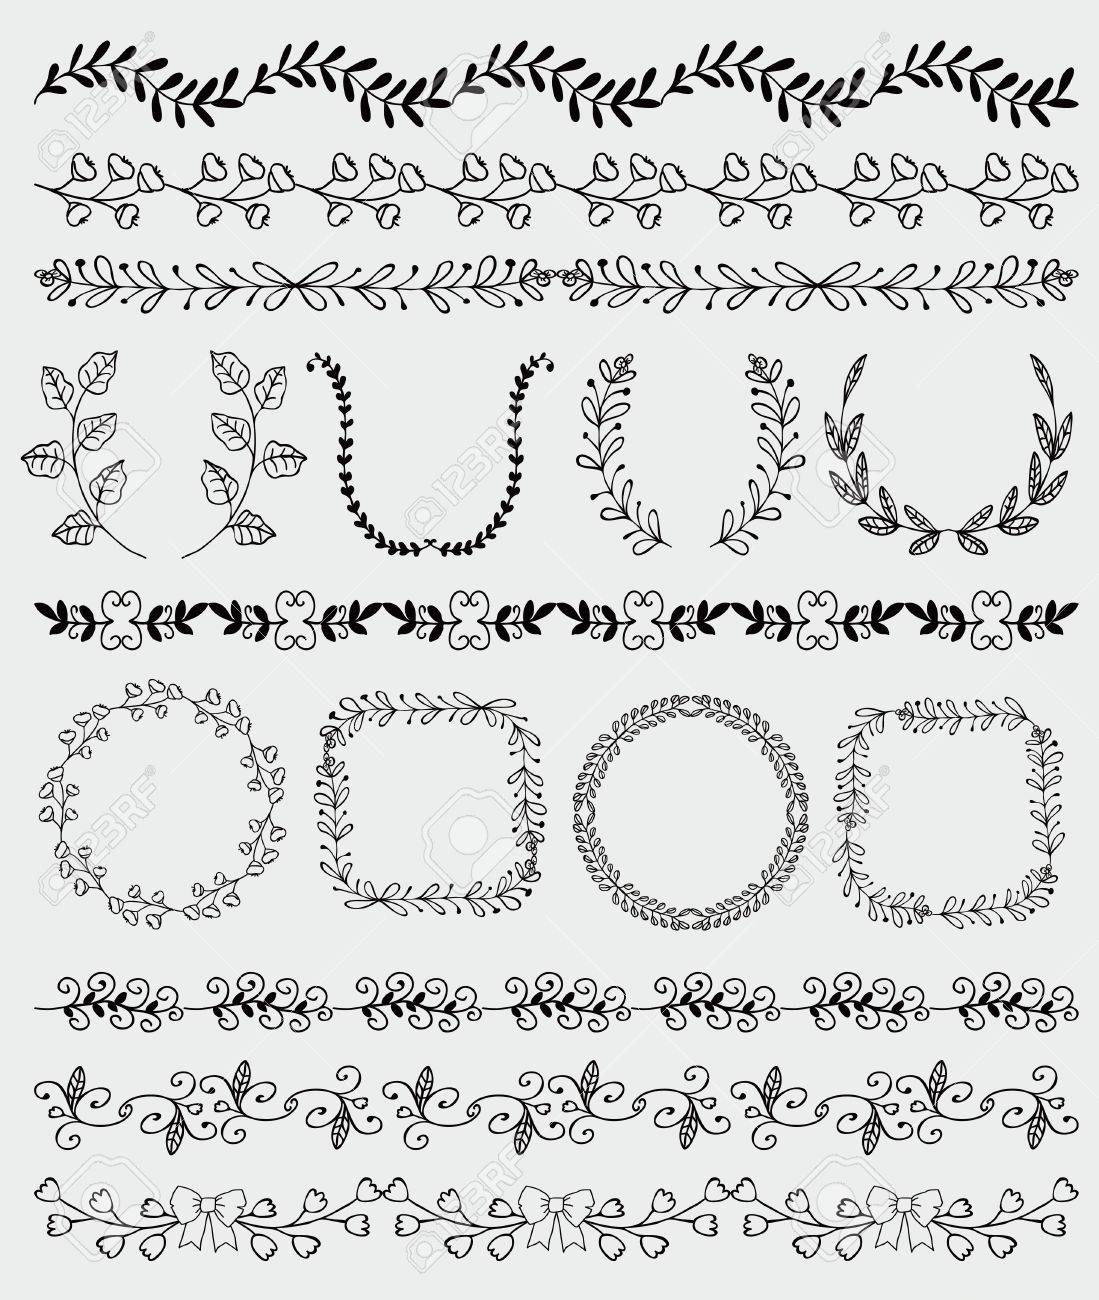 Collection Of Black Seamless Hand Sketched Artistic Rustic Decorative Doodle Vintage Borders And Frames Branches